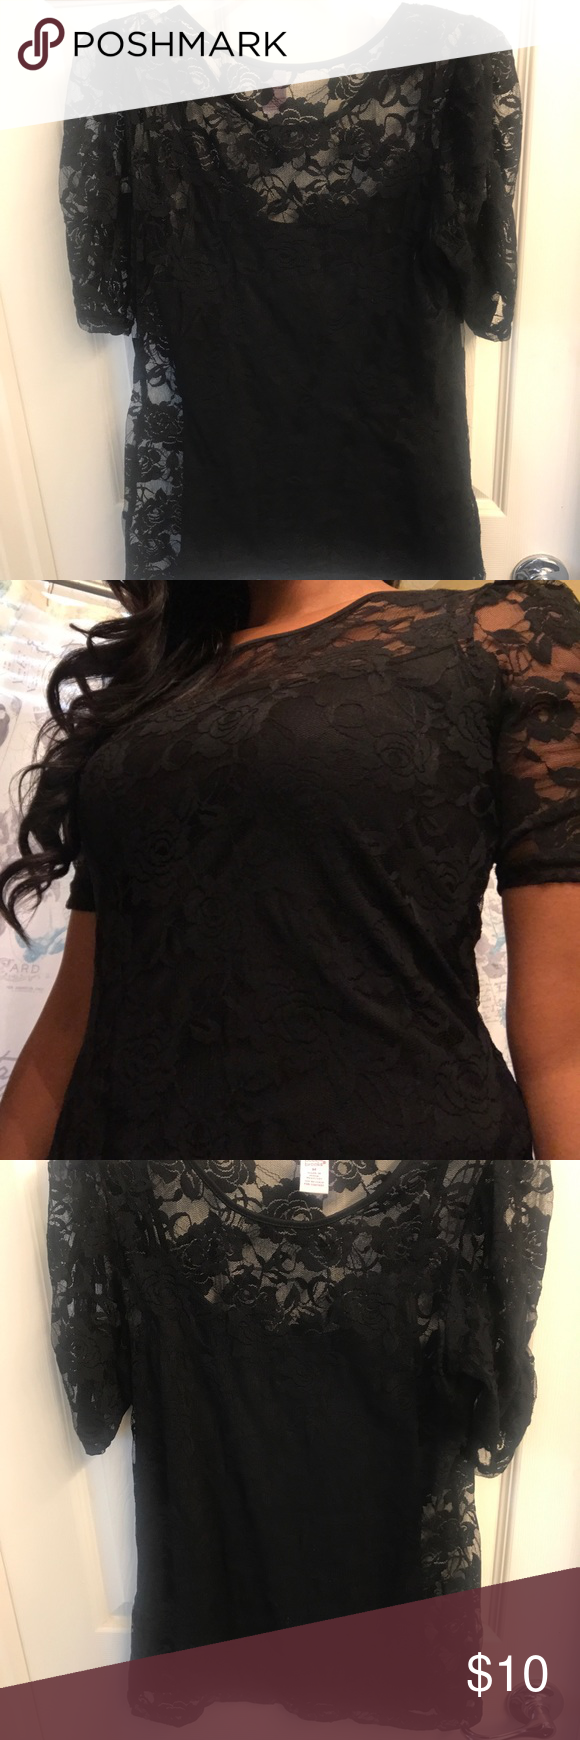 23555434403c7 🎊Bobbie Brooks Black Lace Shirt w  camisole Bobbie Brooks Black Lace Shirt  with attached camisole. Size M Bobbie Brooks Tops Blouses